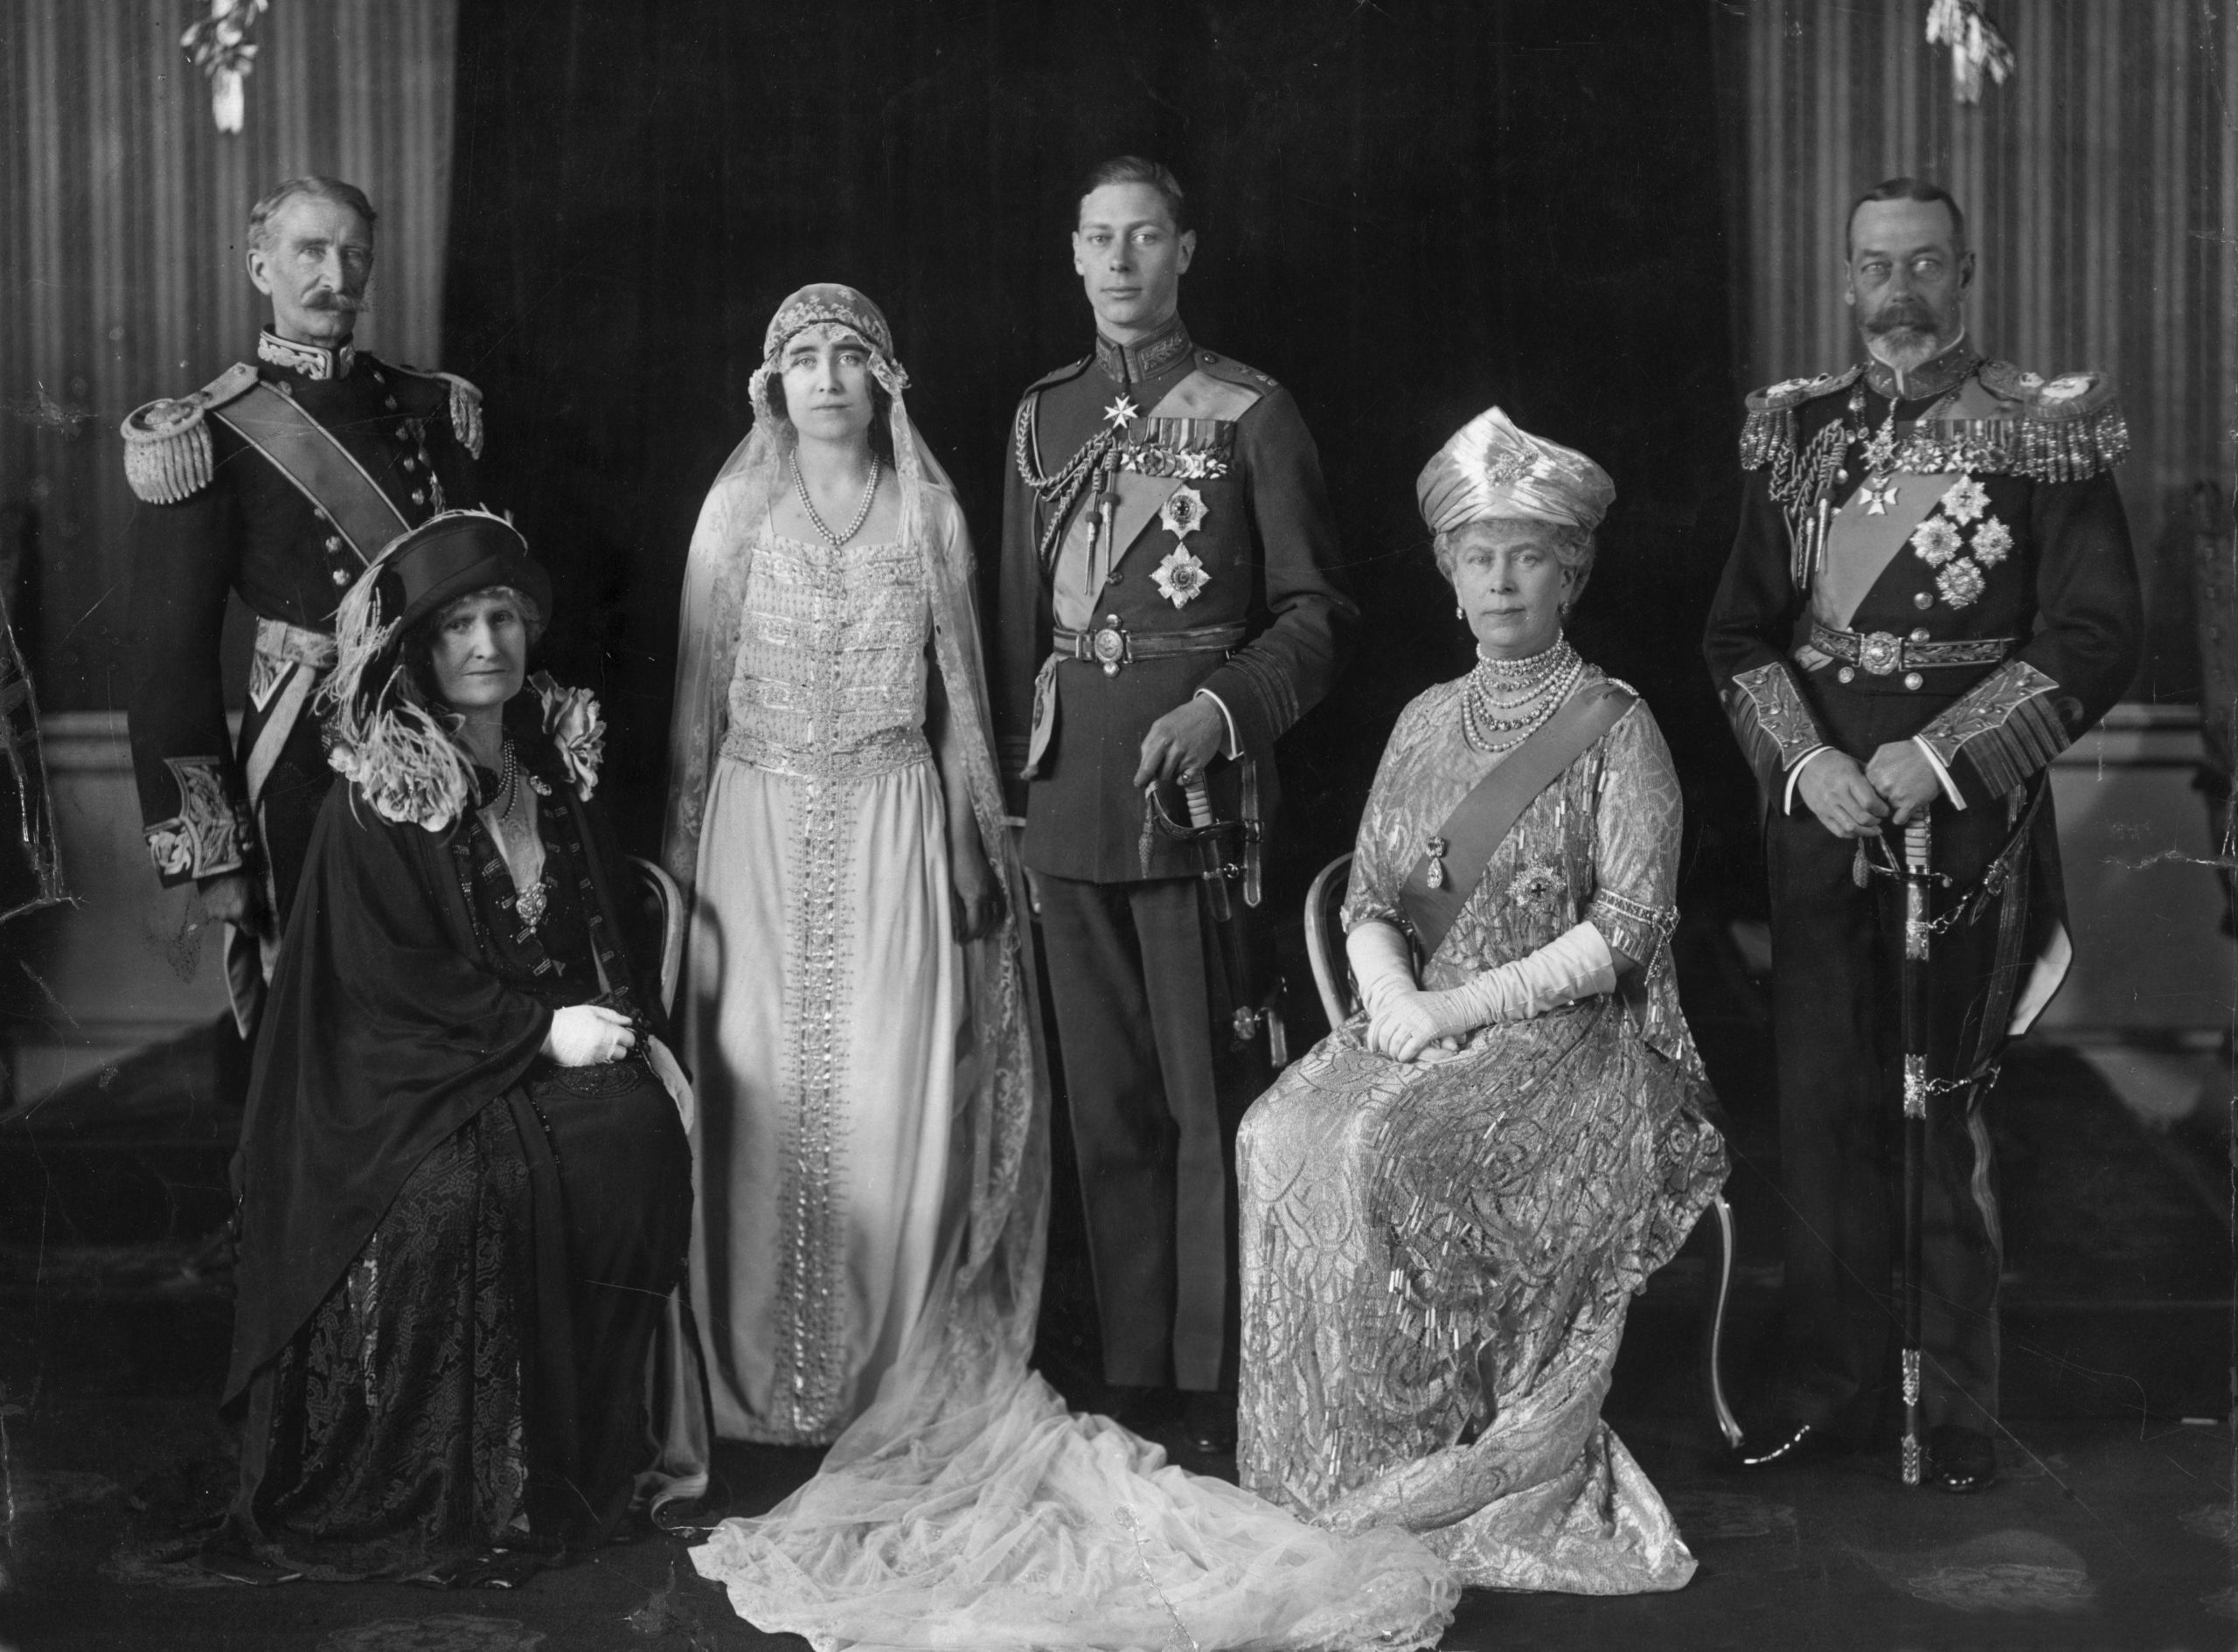 26th April 1923:  King George V of Great Britain (right) and Queen Mary on the wedding day of their son George, later King George VI, to Elizabeth Bowes-Lyon (1900 - 2002). With them are the Earl and Countess of Strathmore (left)